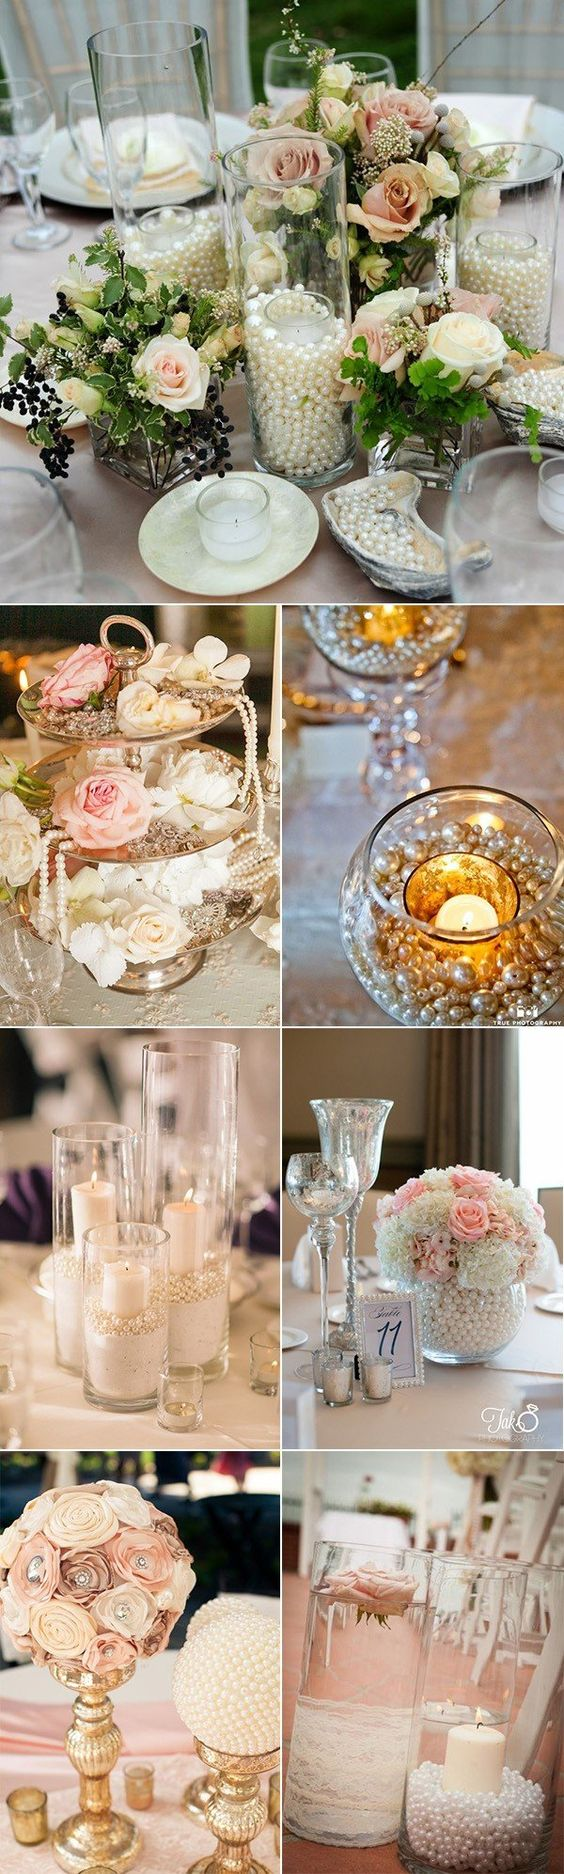 50 Fabulous Vintage Wedding Centerpiece Decoration Ideas Vintage